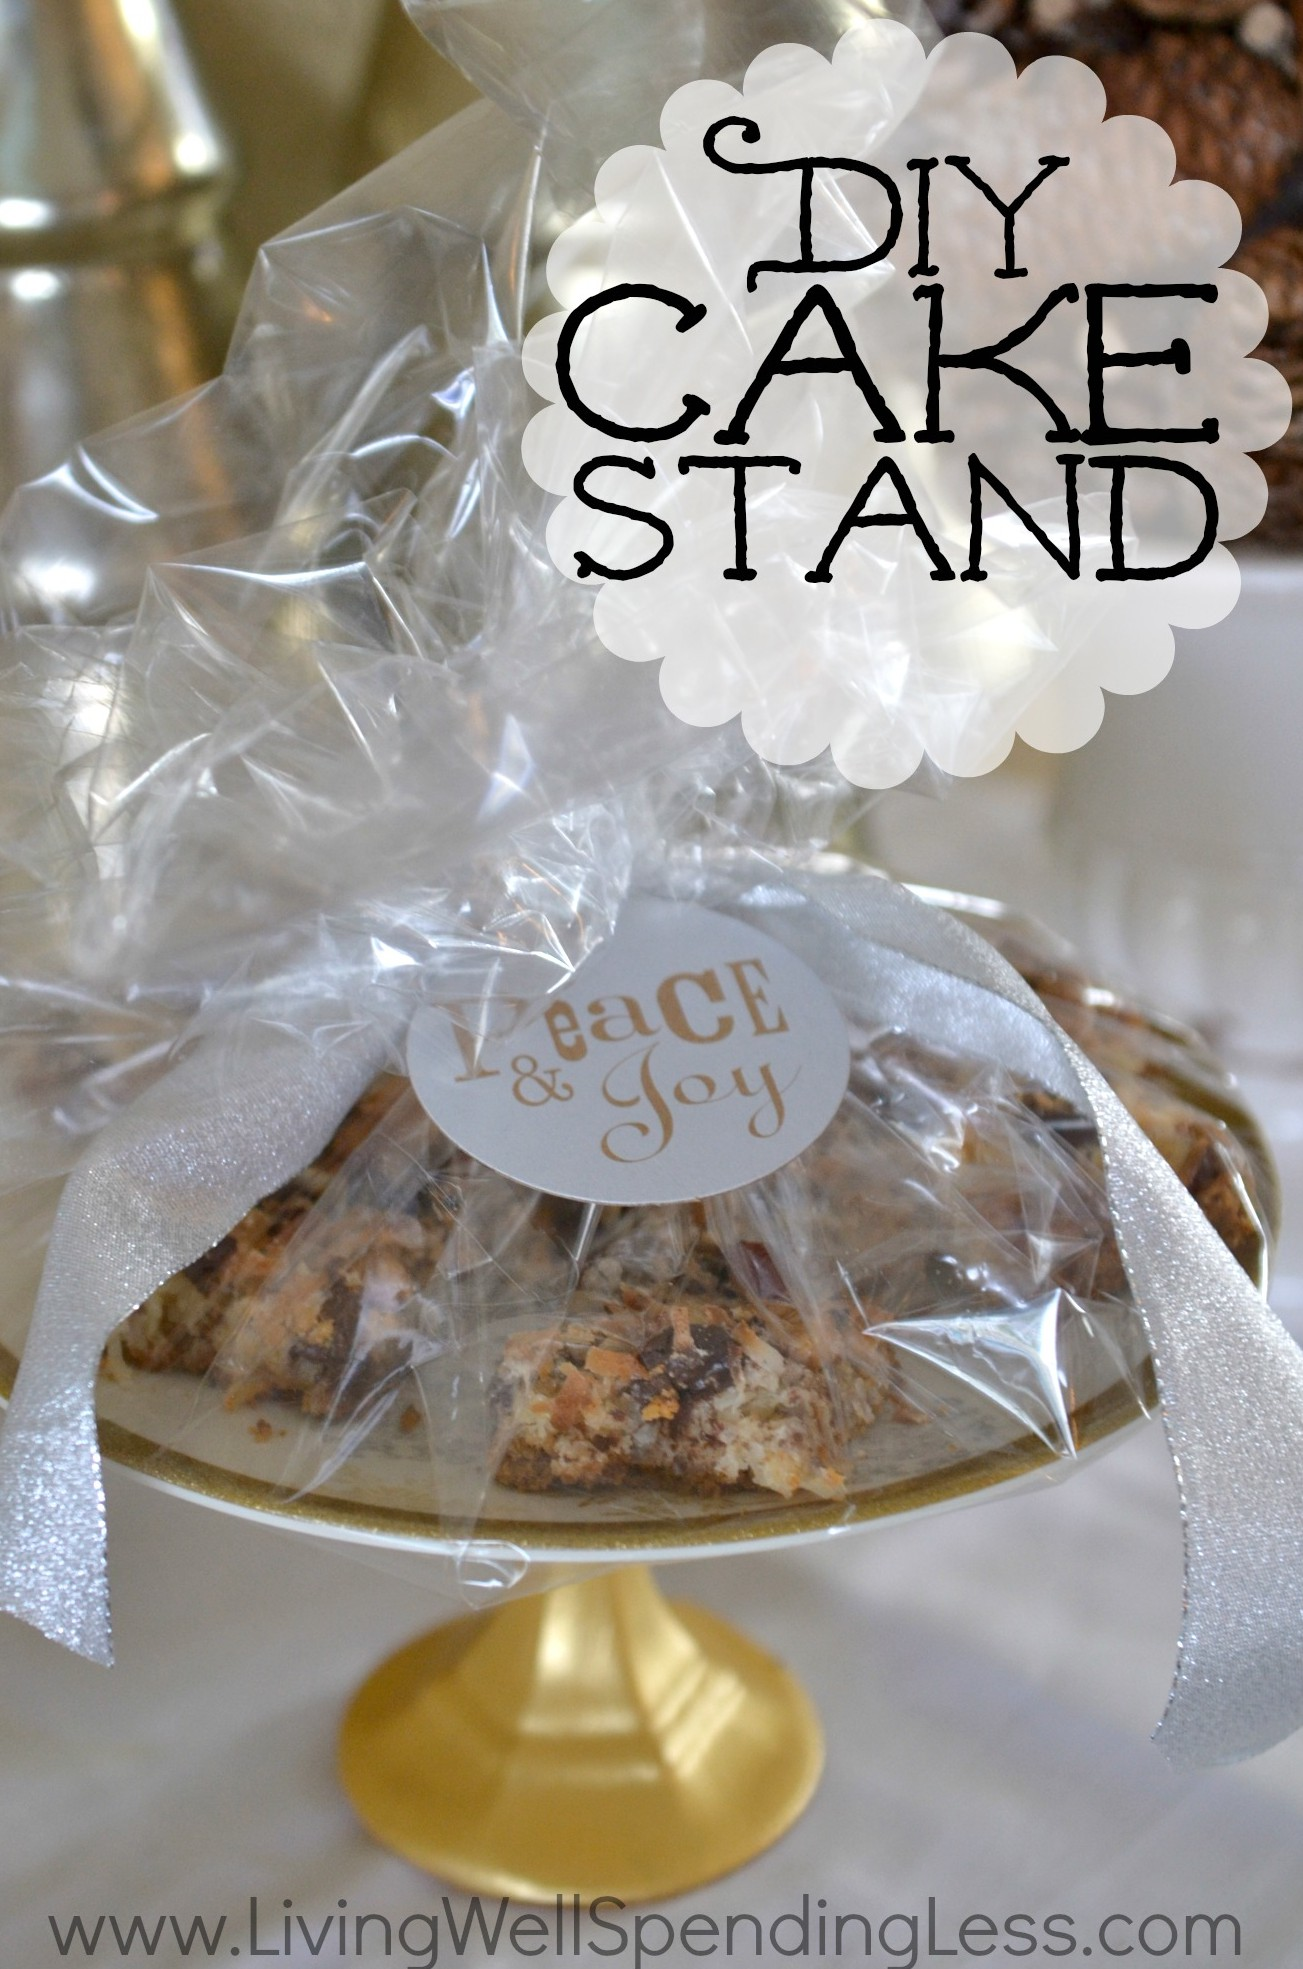 Super simple craft project using an inexpensive decorative for Plate cake stand diy